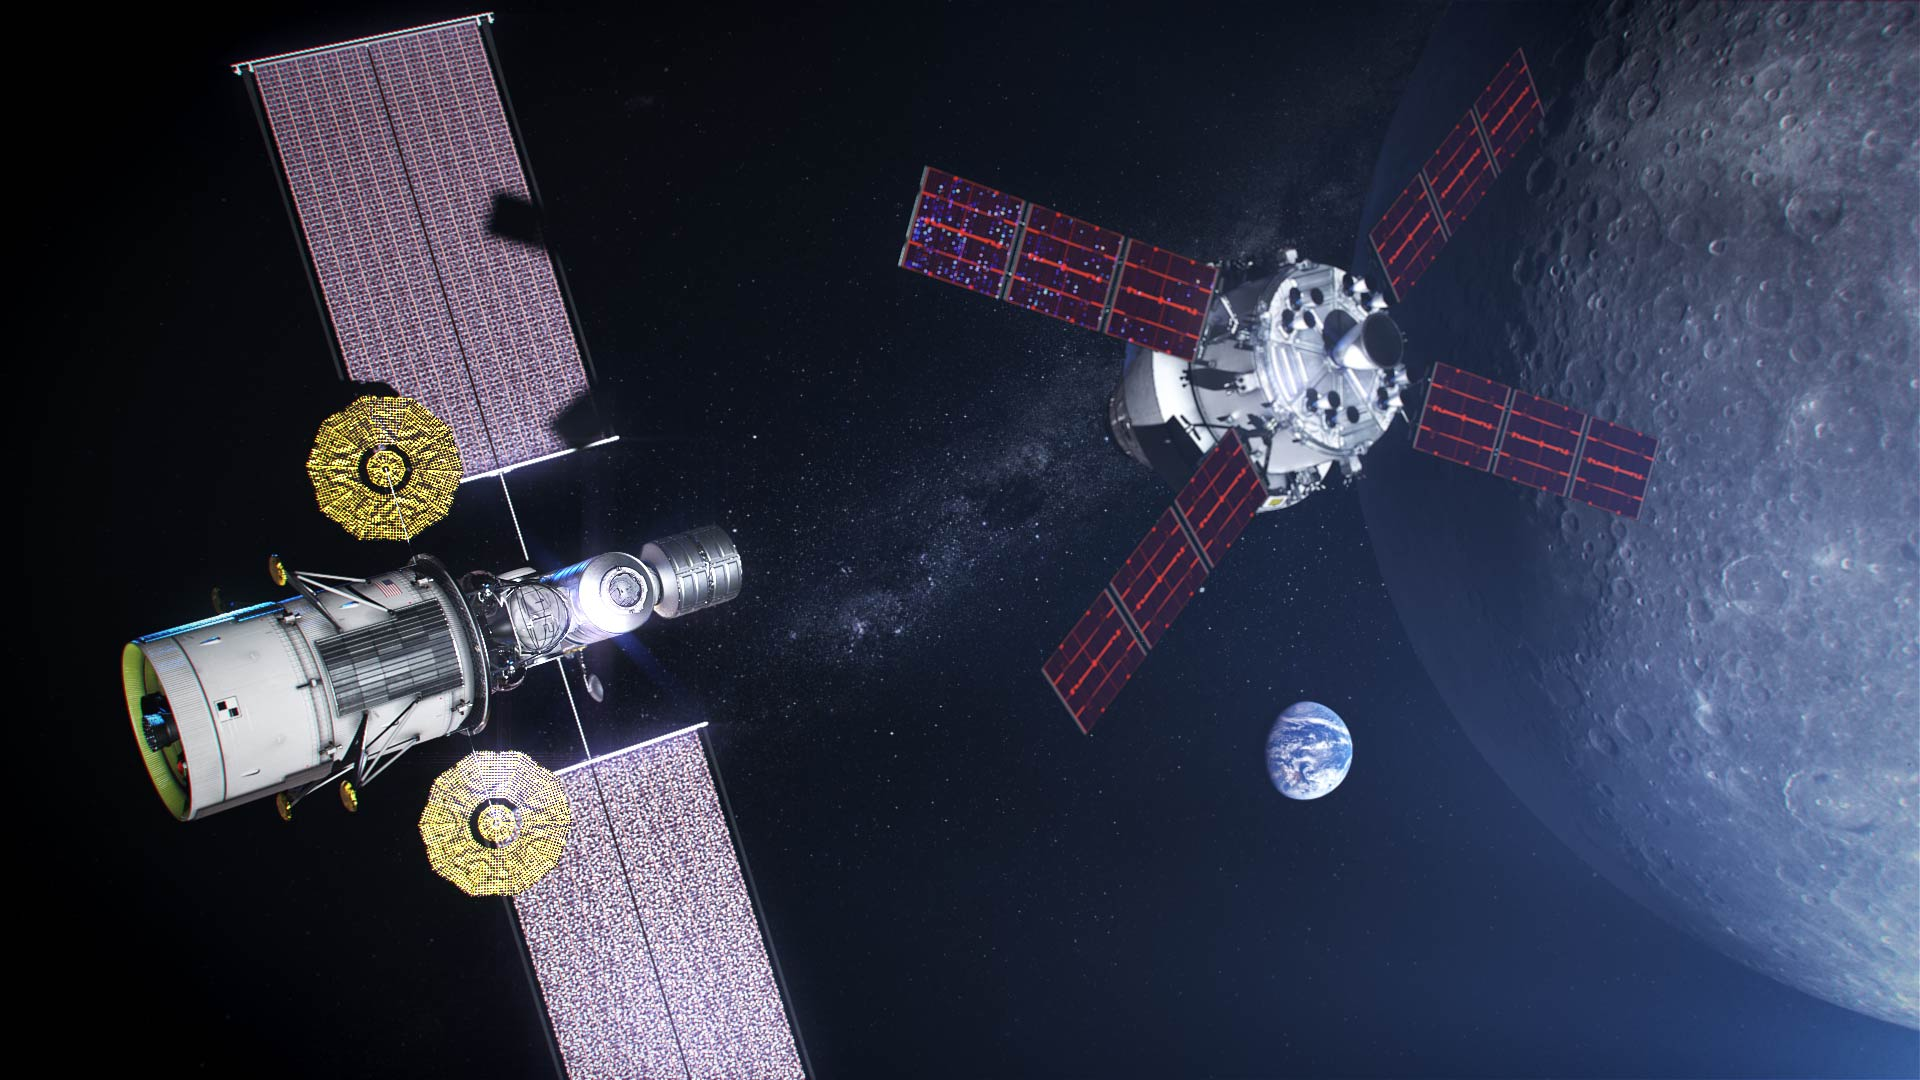 """A concept for NASA's """"phase one"""" Lunar Gateway, which includes a power and propulsion element and a minimal habitation module. A lunar lander and resupply module are attached to the cislunar outpost in this rendering with an Orion spacecraft inbound for docking. Credit: NASA"""